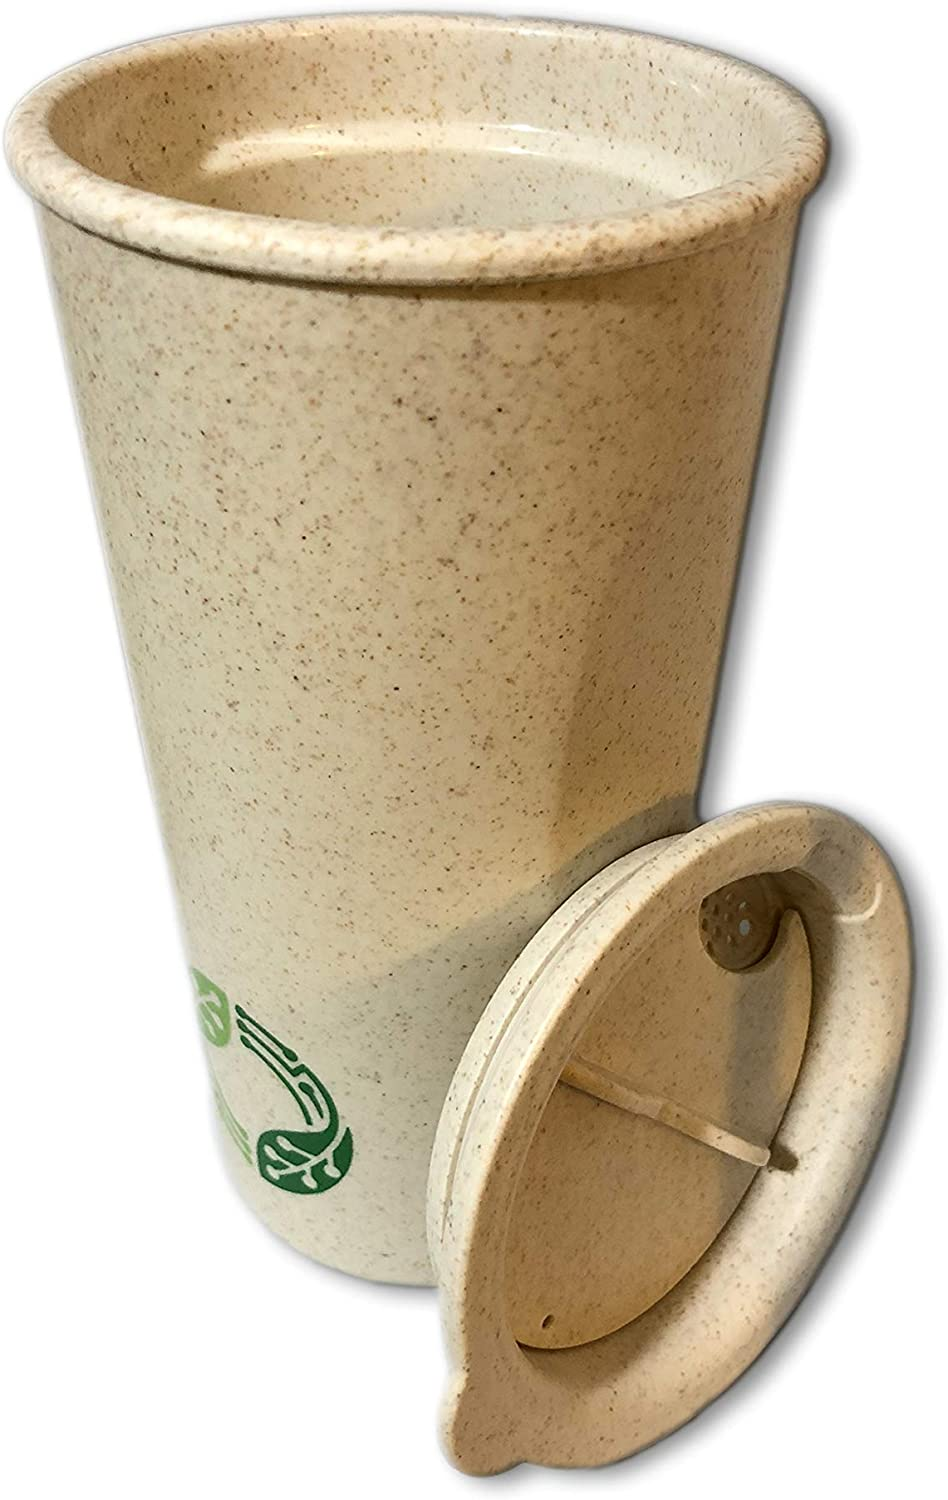 Hsc 16oz Reusable Coffee Cup, Double wall Insulated Tea cup with Lid, Eco-Friendly BPAFree Non-Toxic Travel Mug for home, school, Travel and Office,(WheatStraw)